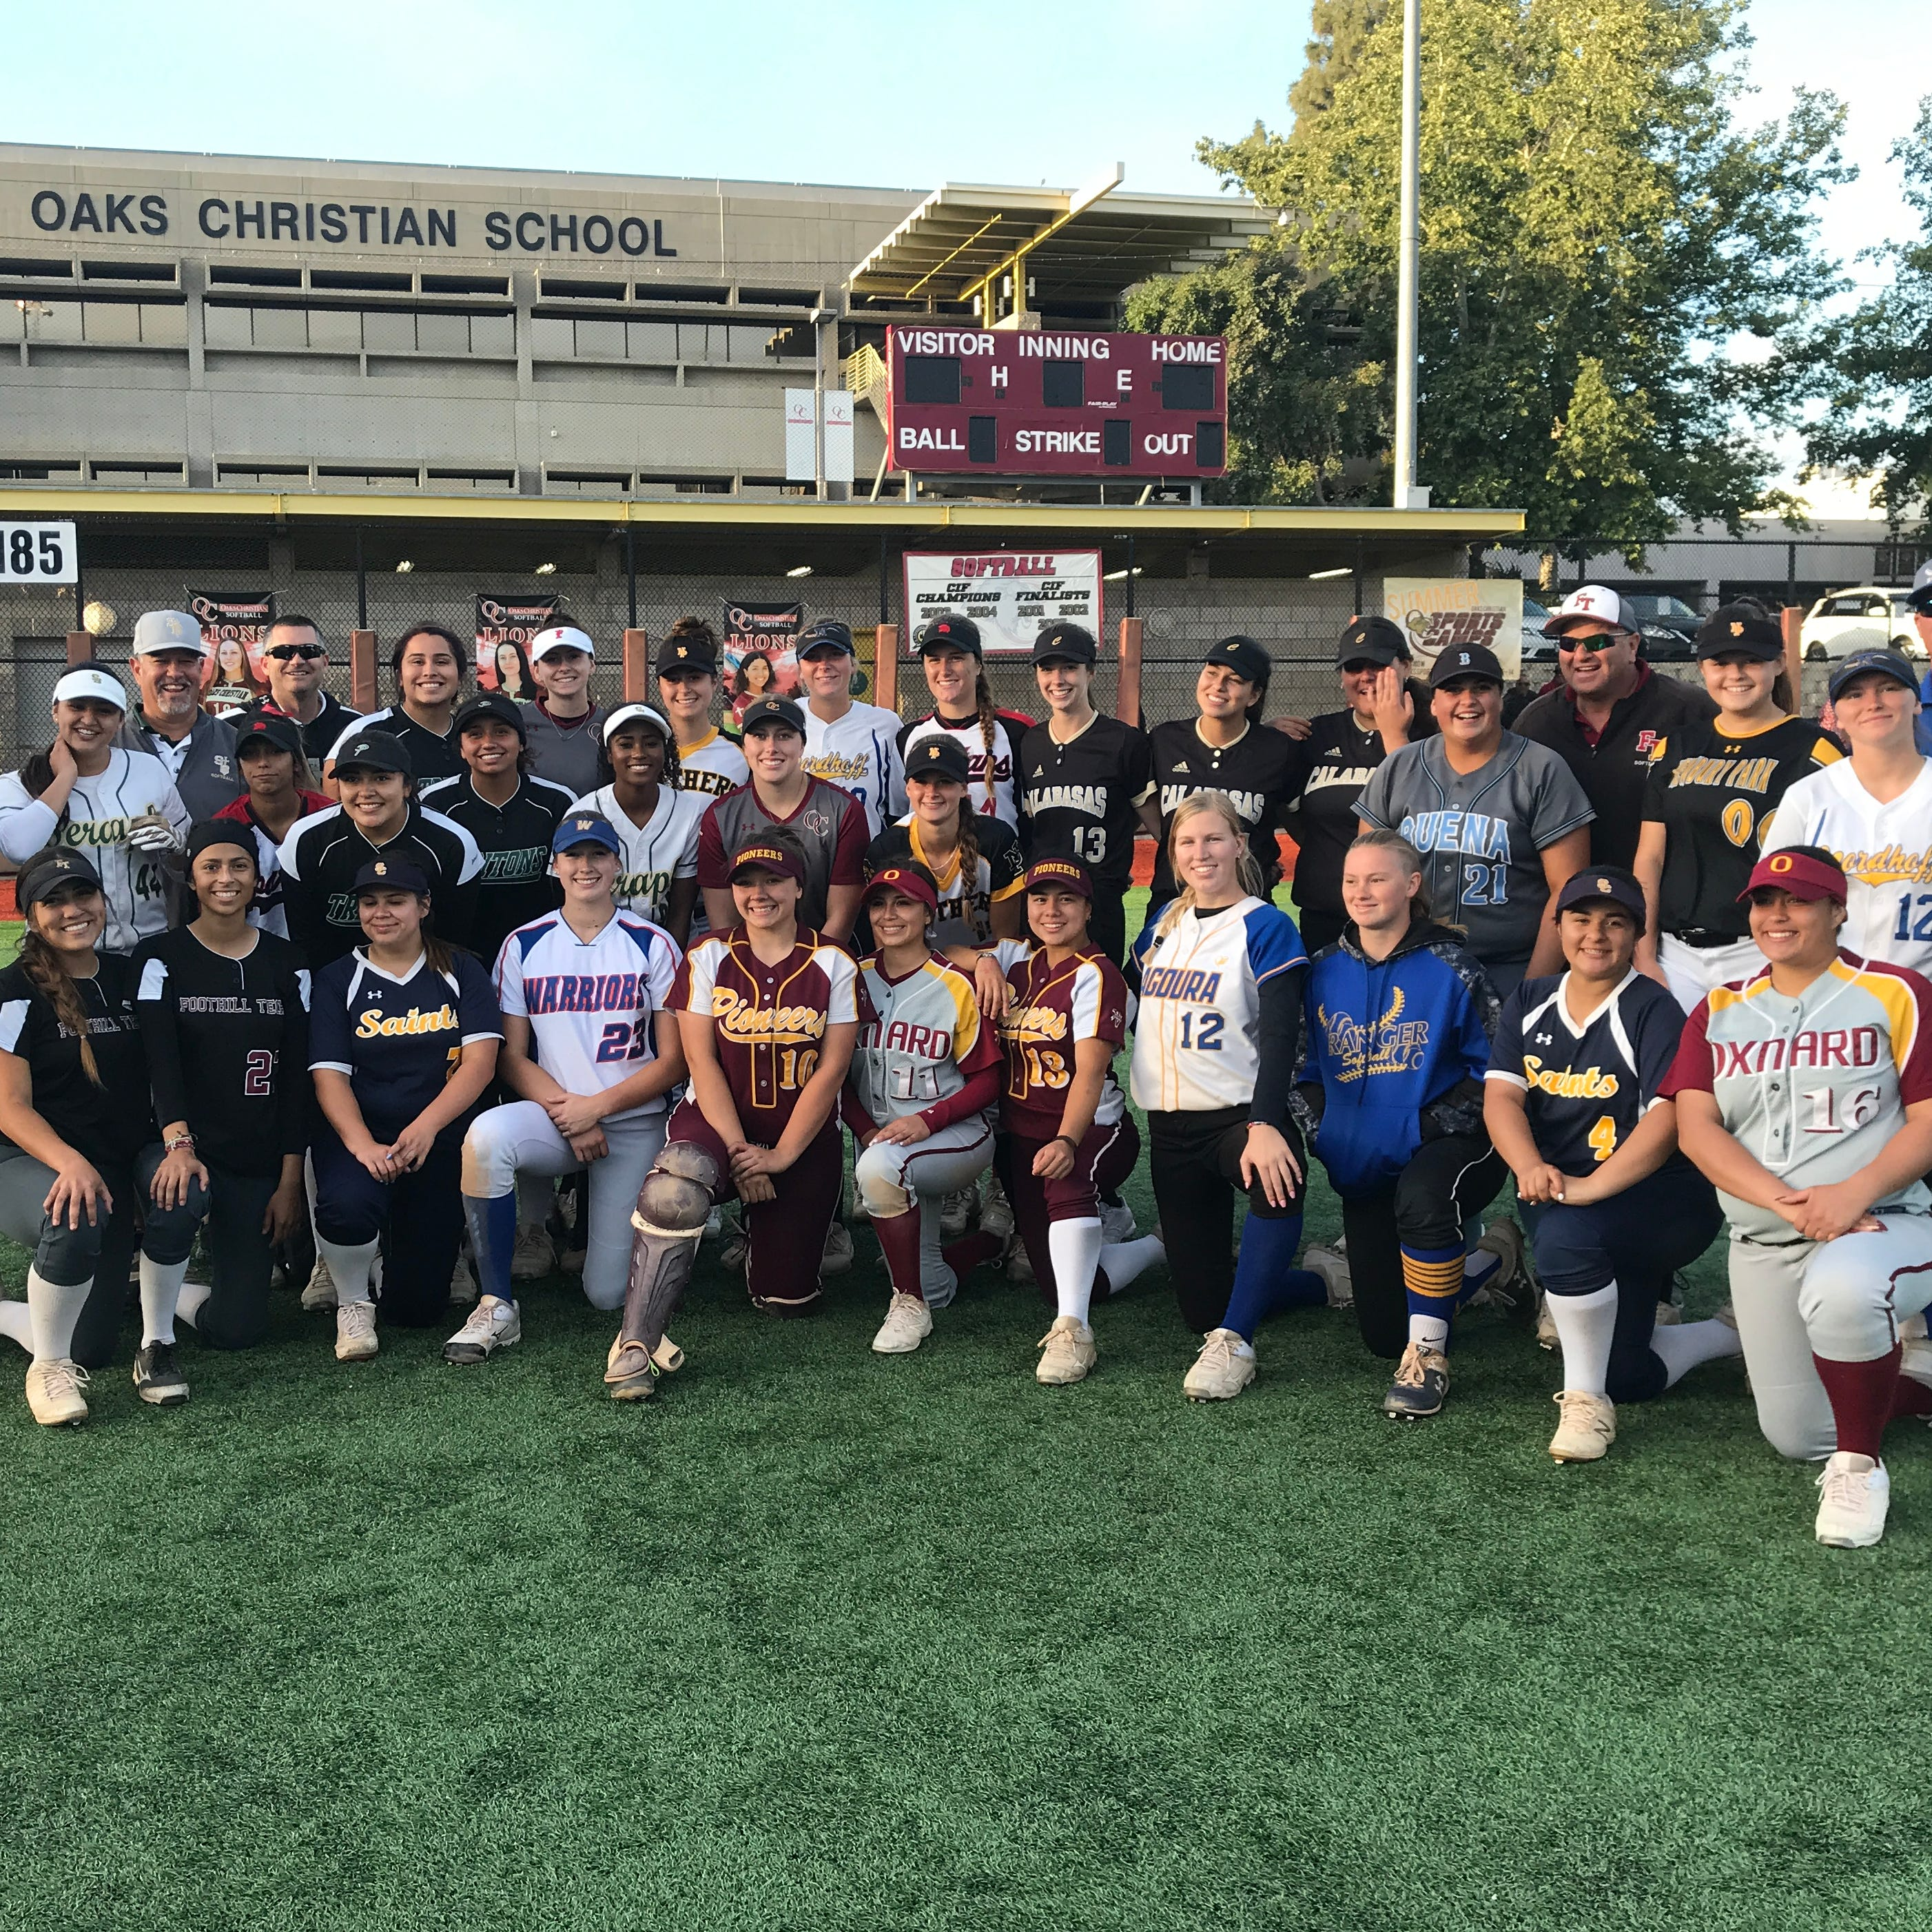 Friends Campbell, Johnson ensure All-Star softball game ends in 5-5 tie